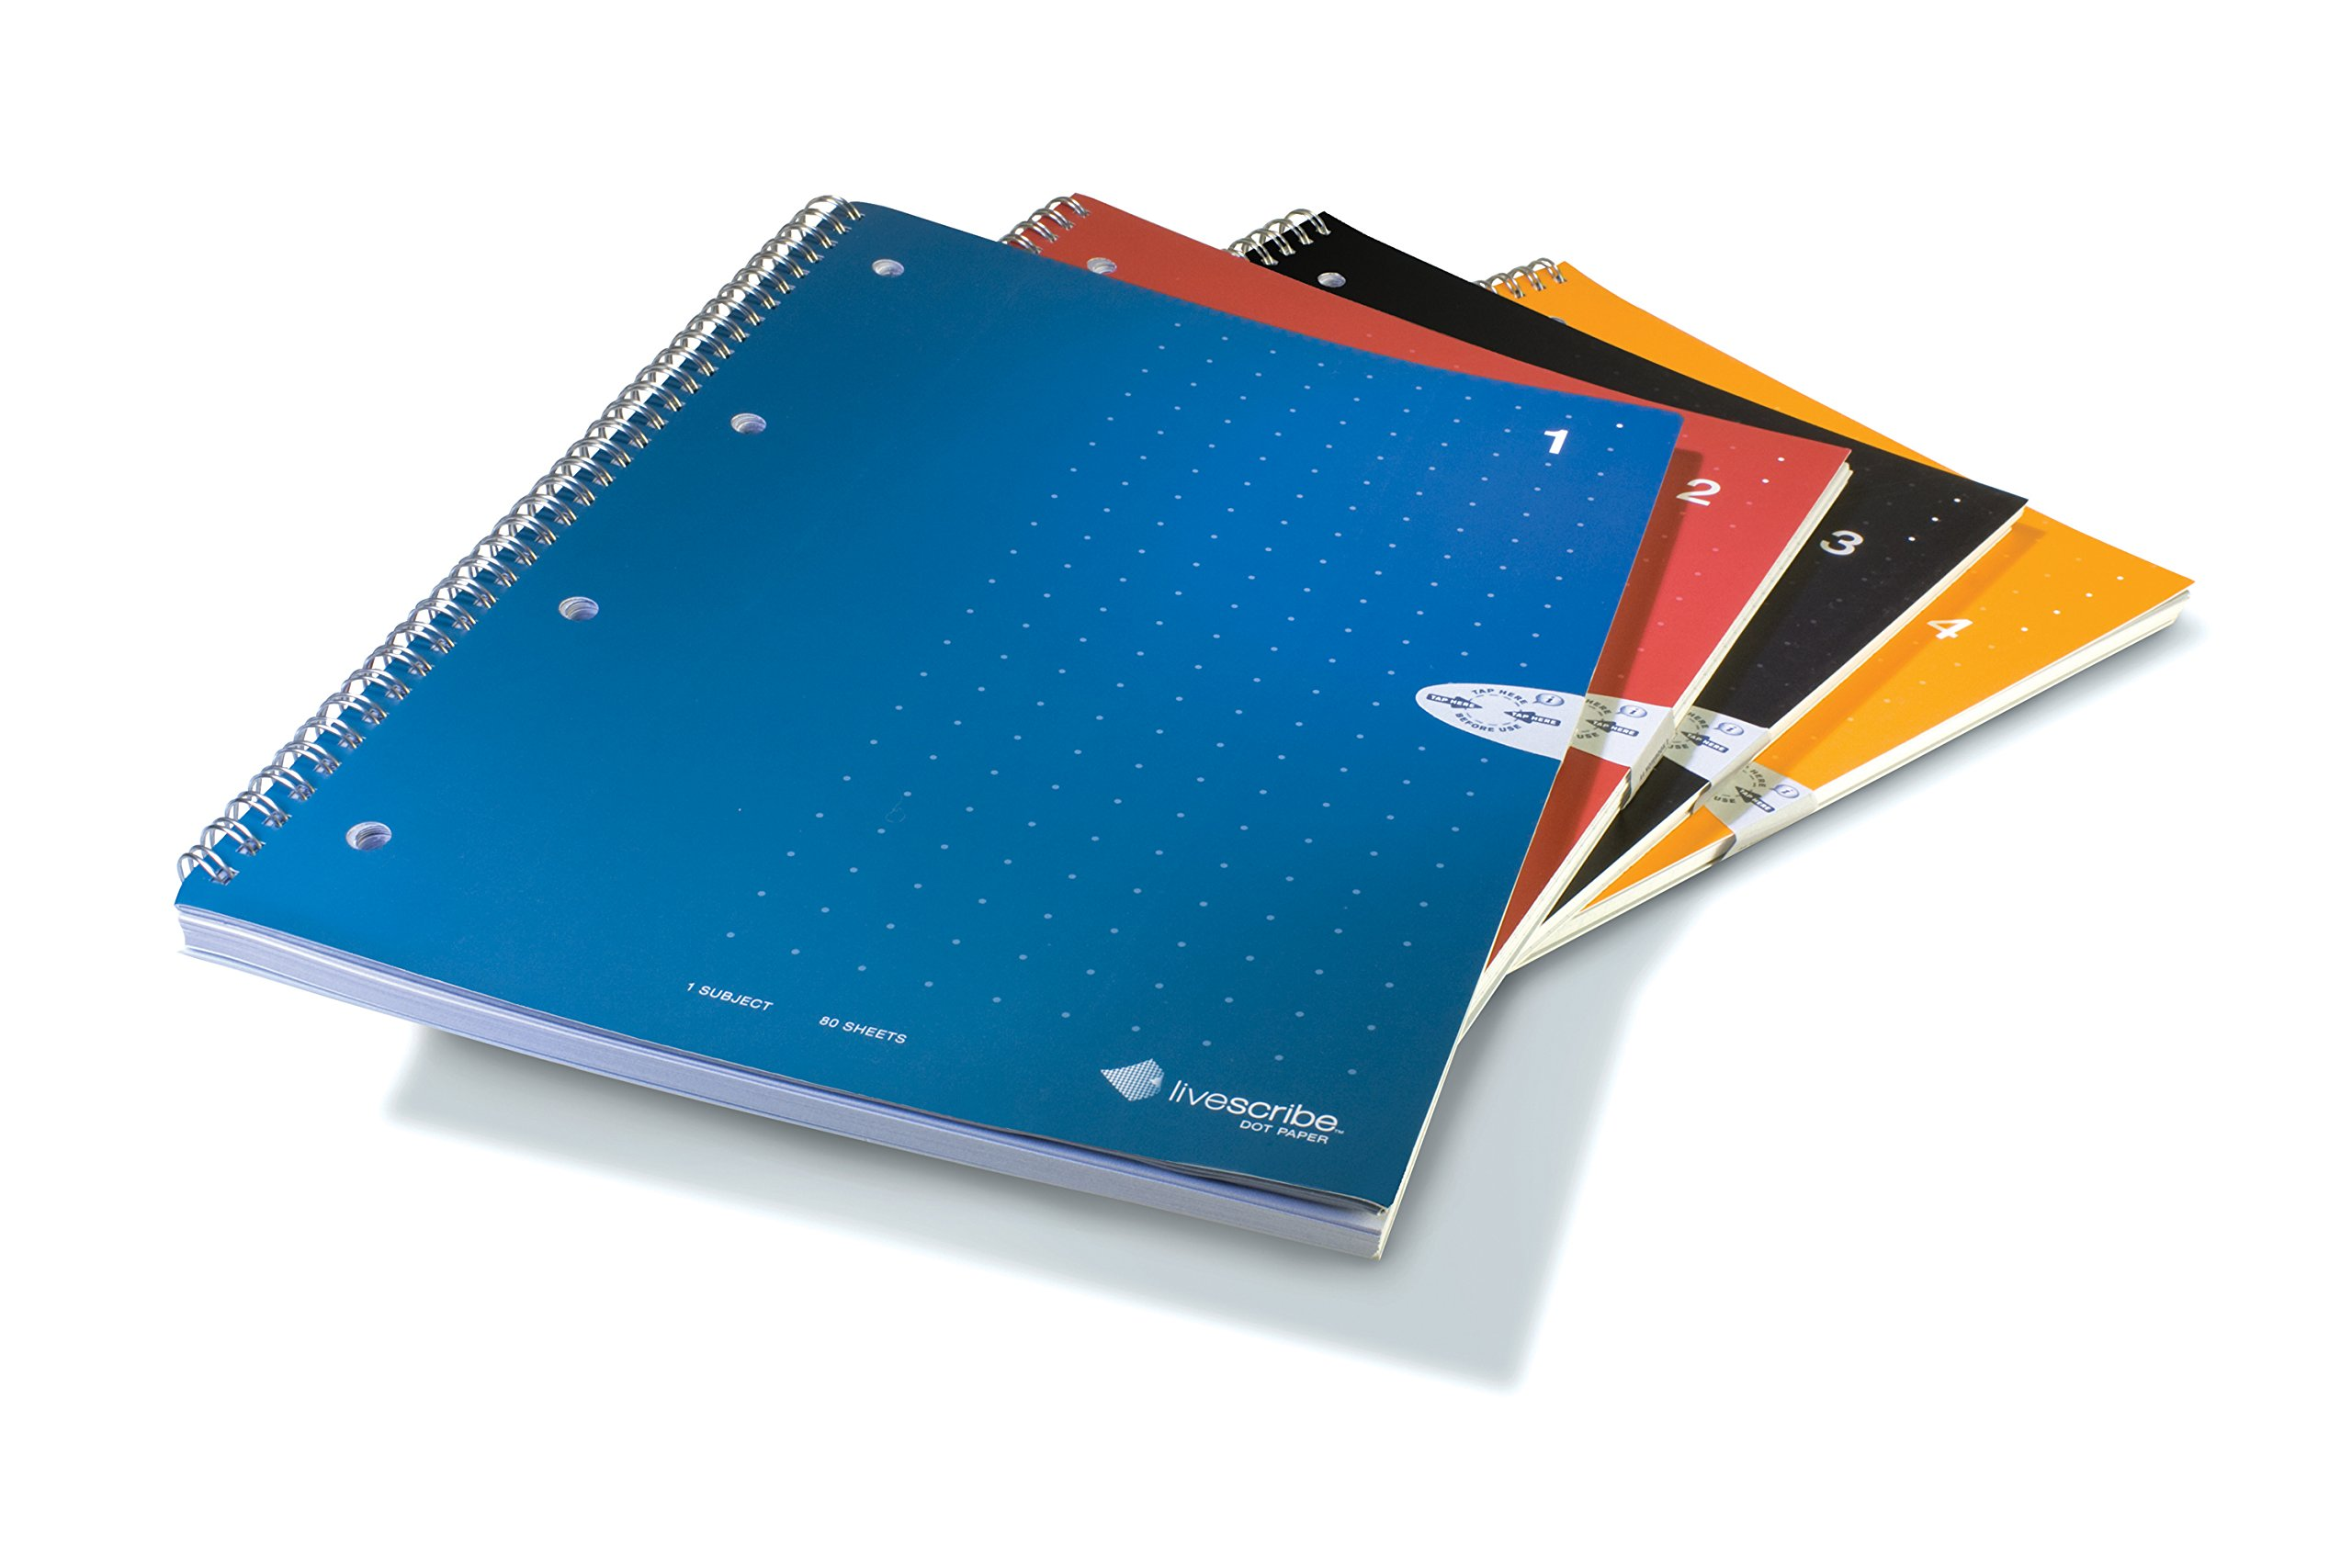 Livescribe Single-Subject Lined Notebooks #1-4 (A4, 8.3'' x 11.7'', 210mm x 297mm), 4 Colors, 4 Pack